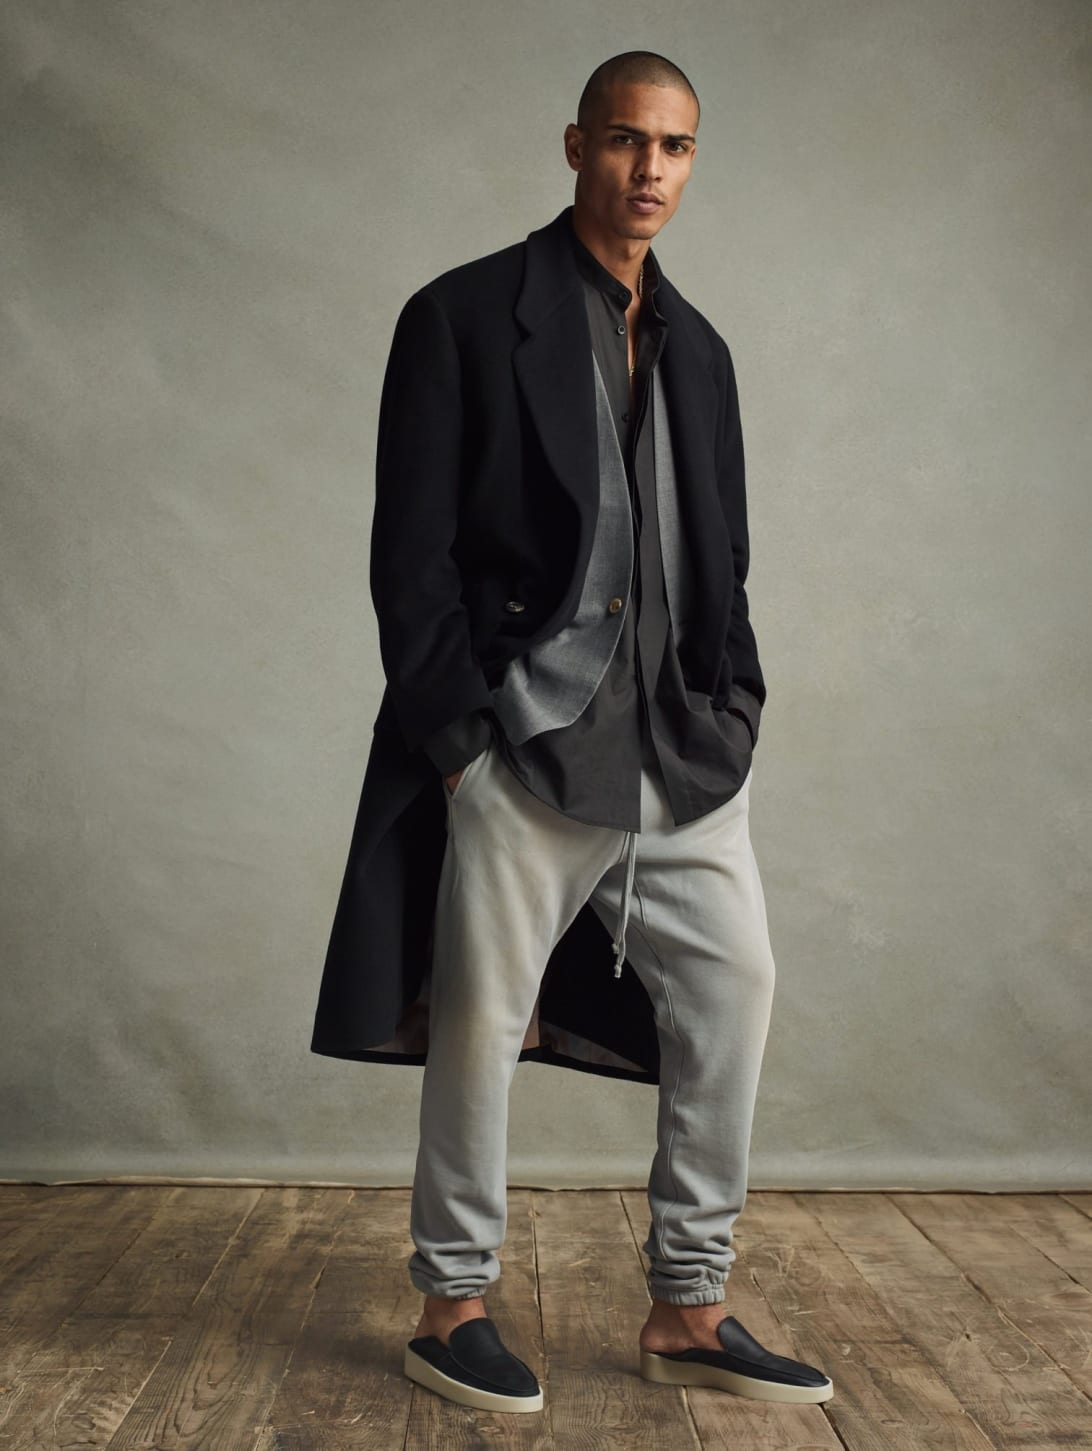 Seventh Collection Lookbook Look 10